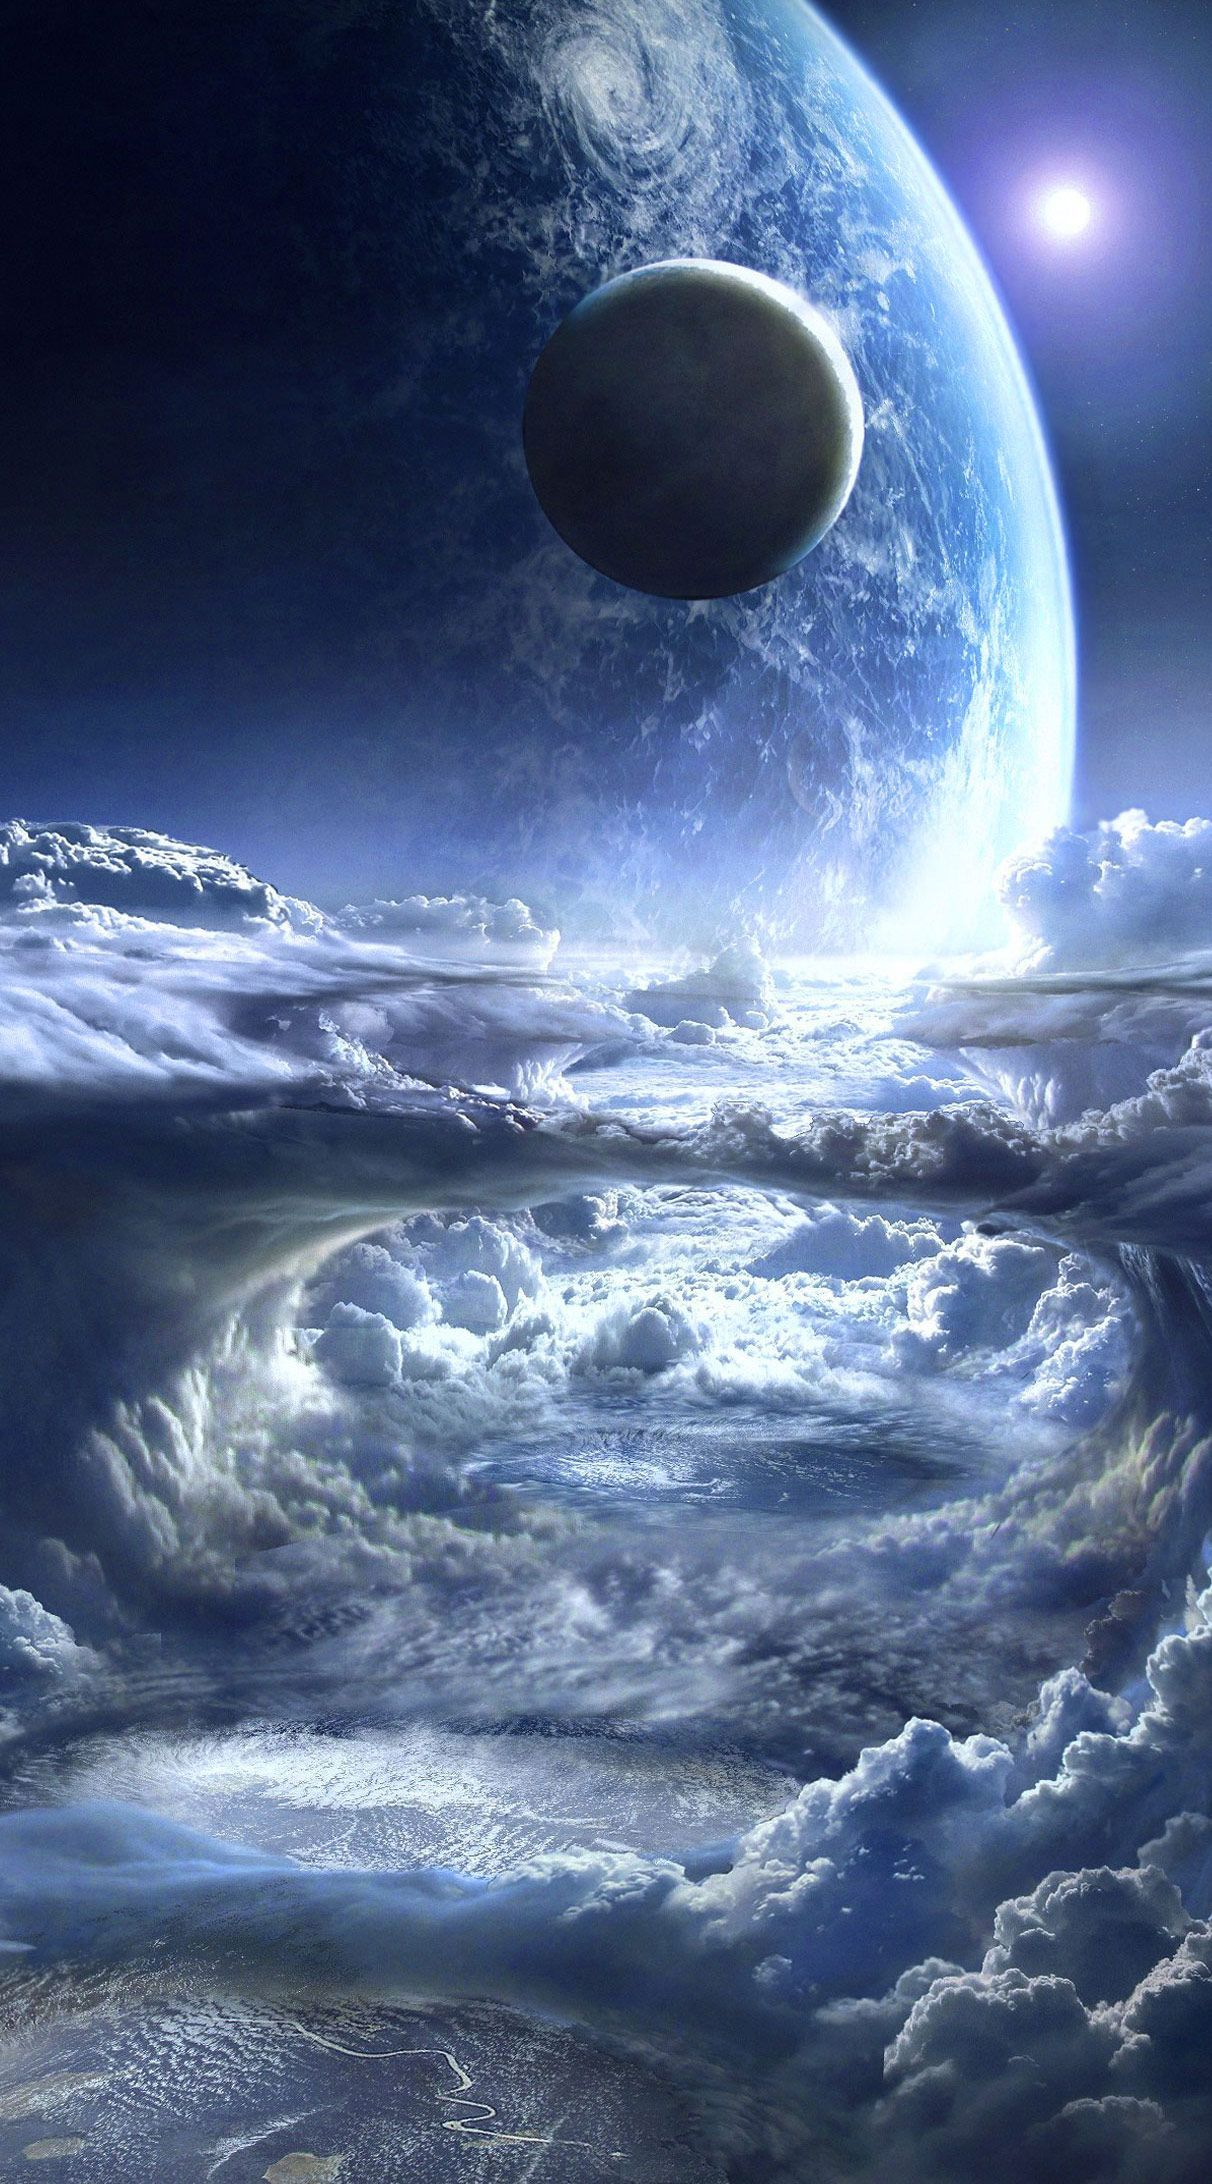 Space Wallpapers Smartphone In 2020 Sci Fi Wallpaper Wallpaper Space Space Art